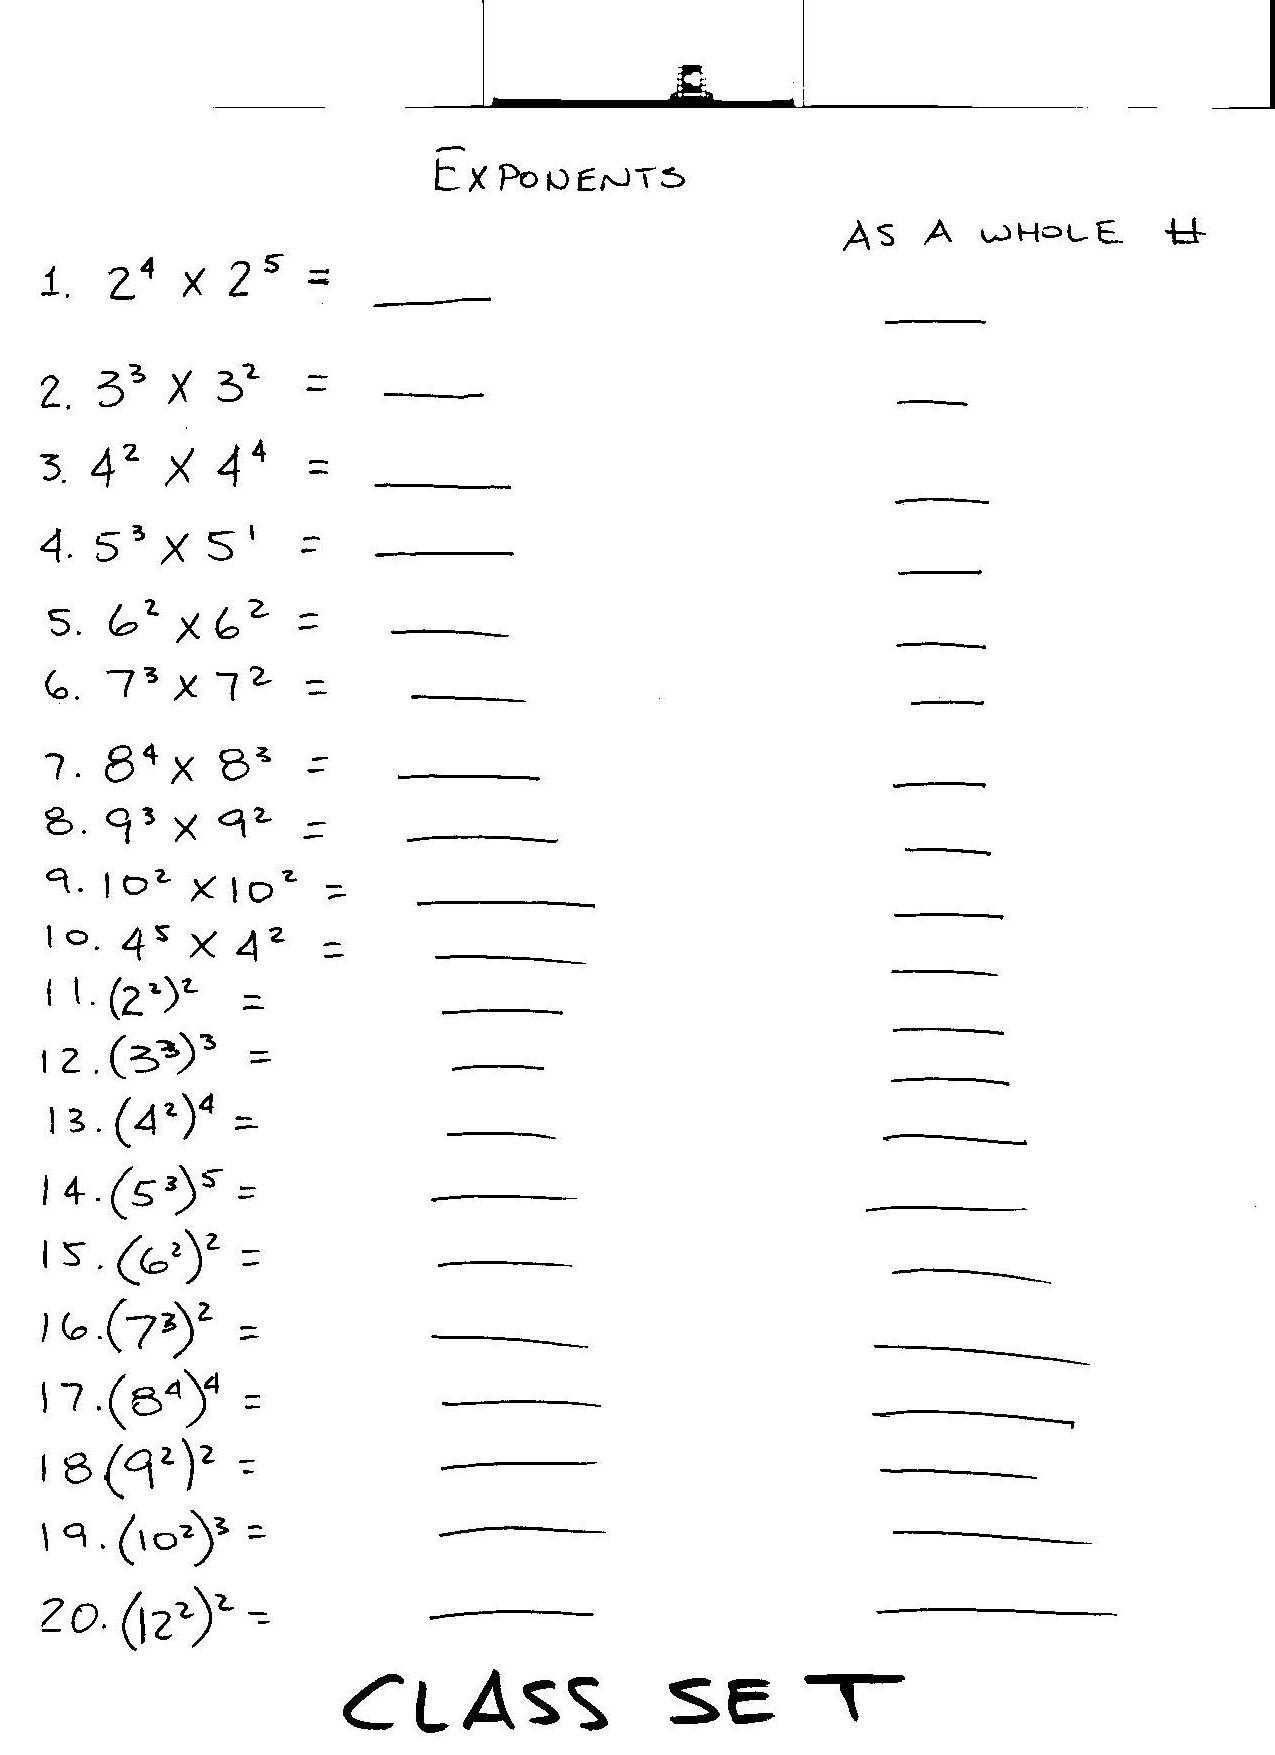 Square Root Worksheets 8th Grade Pdf or Math Worksheets for 8th Grade Pdf the Best Worksheets Image